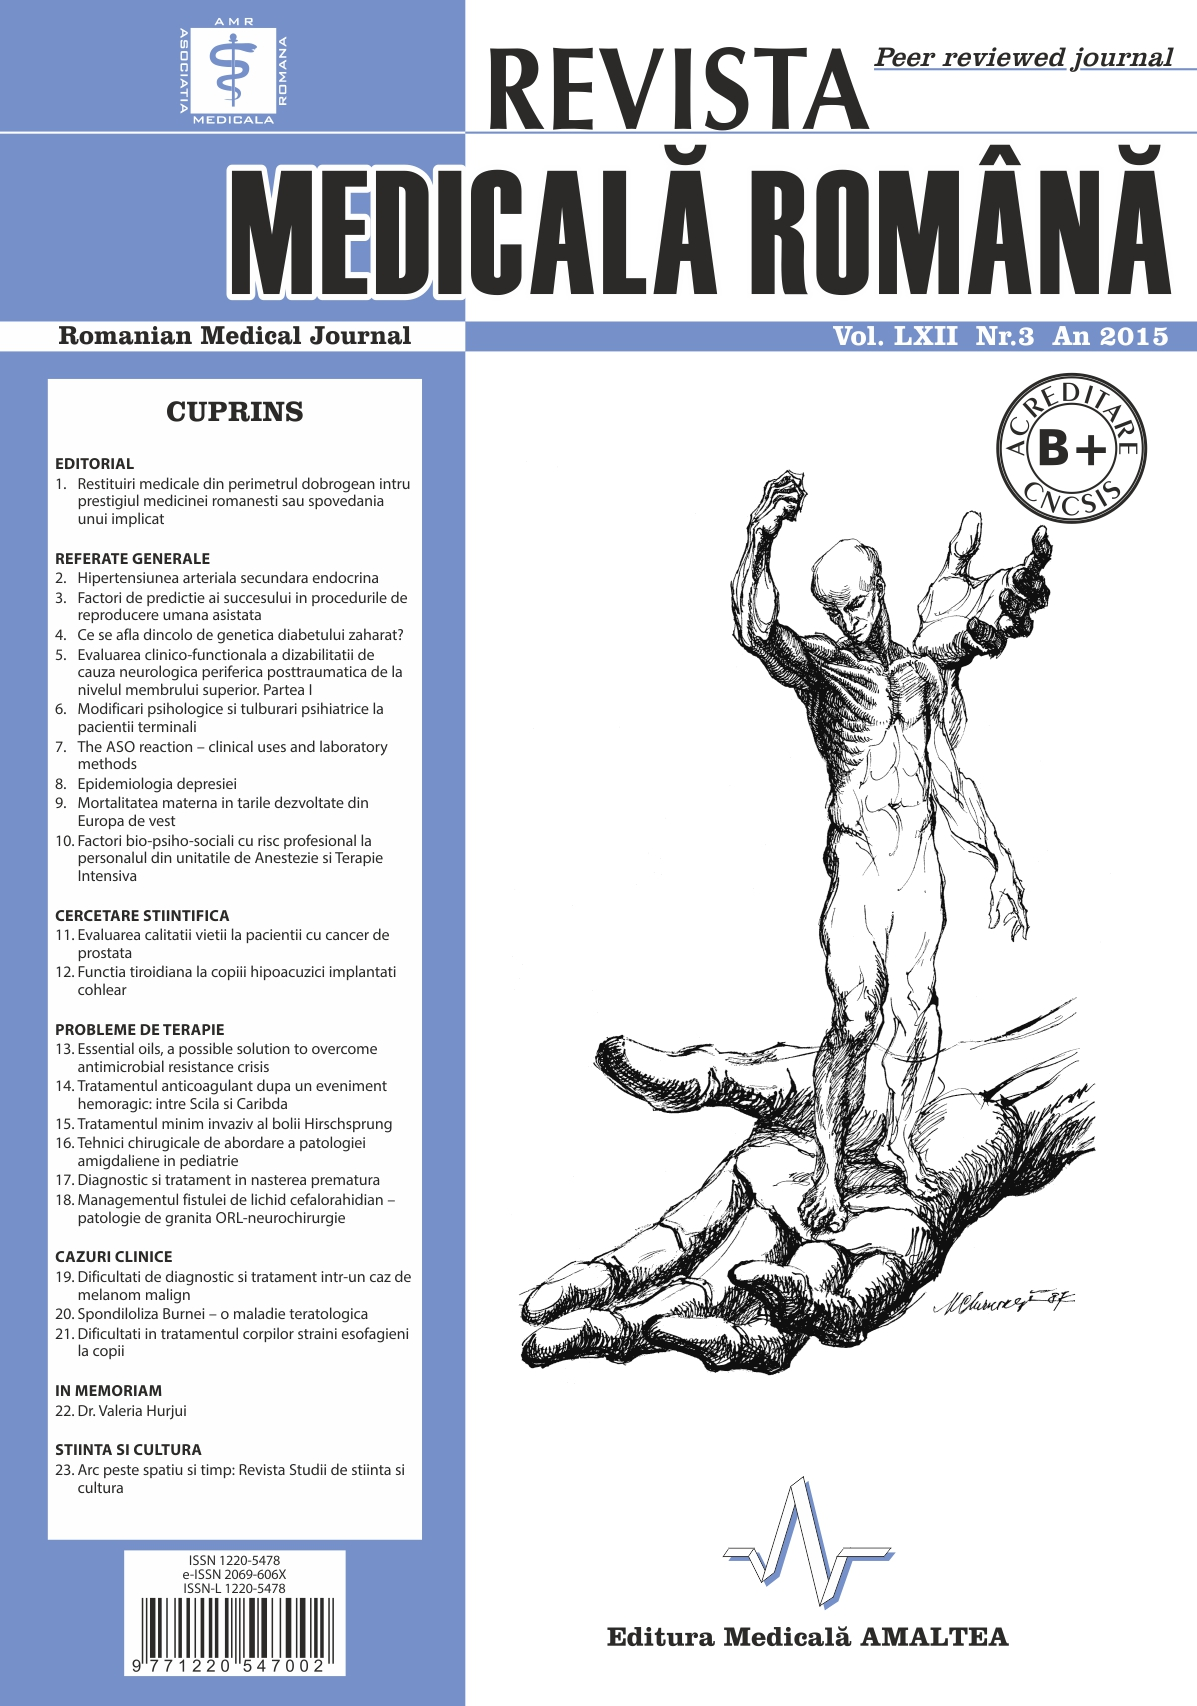 REVISTA MEDICALA ROMANA - Romanian Medical Journal, Vol. LXII, Nr. 3, An 2015